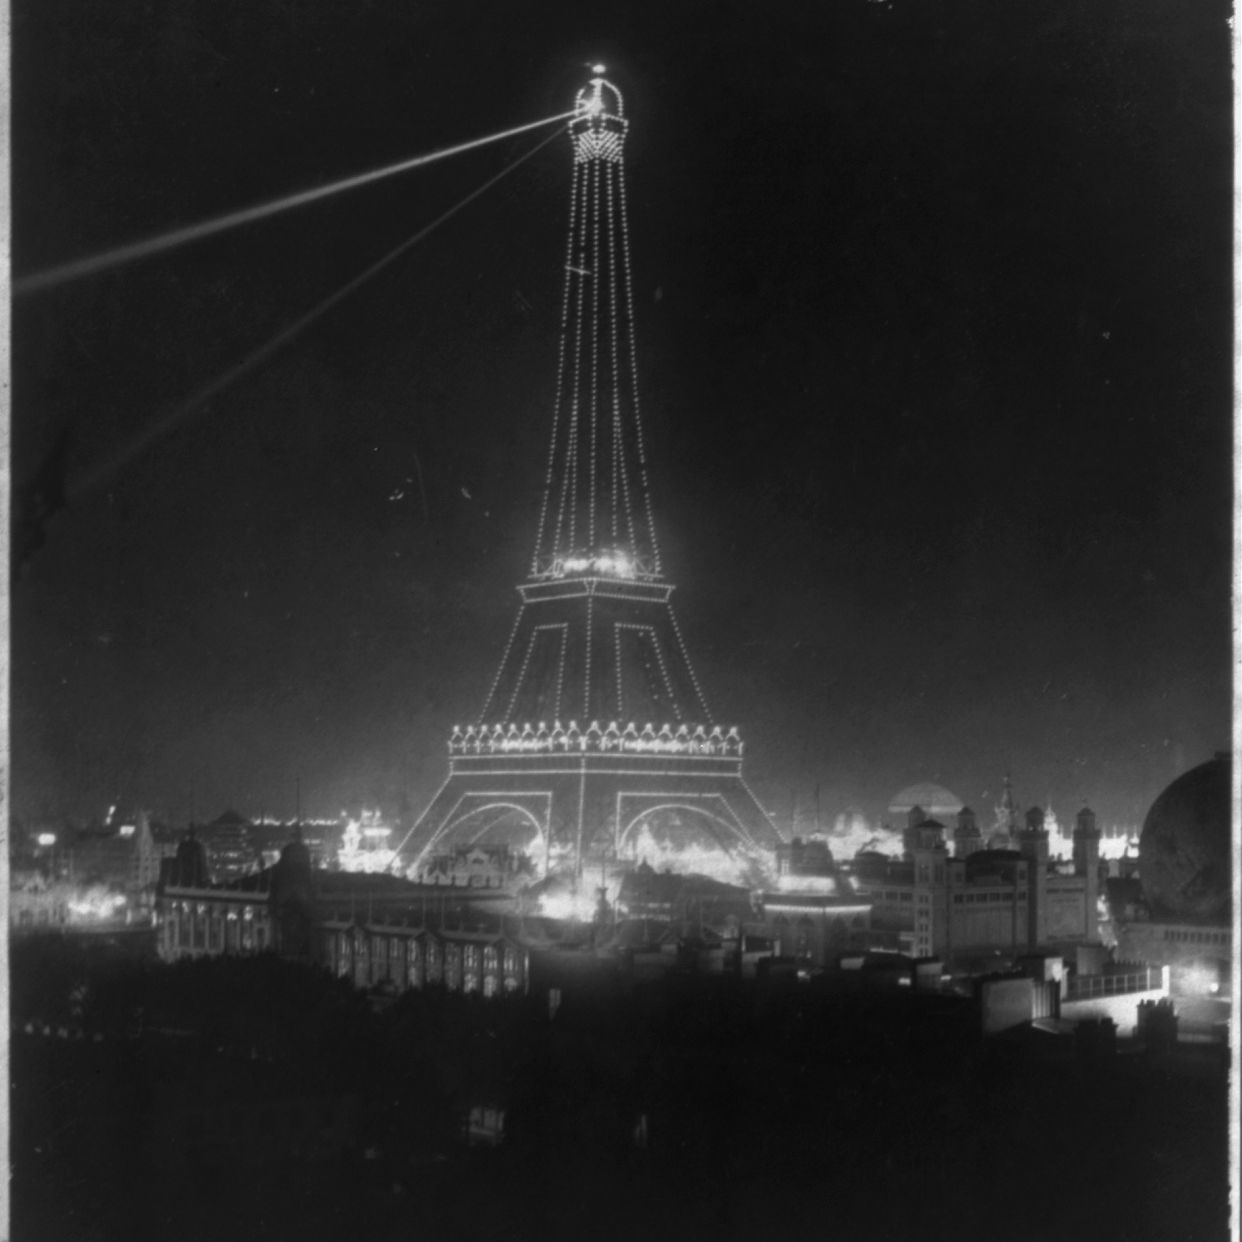 The Eiffel Tower shot for the Exposition Universelle (Universal Exhibition) of 1900.